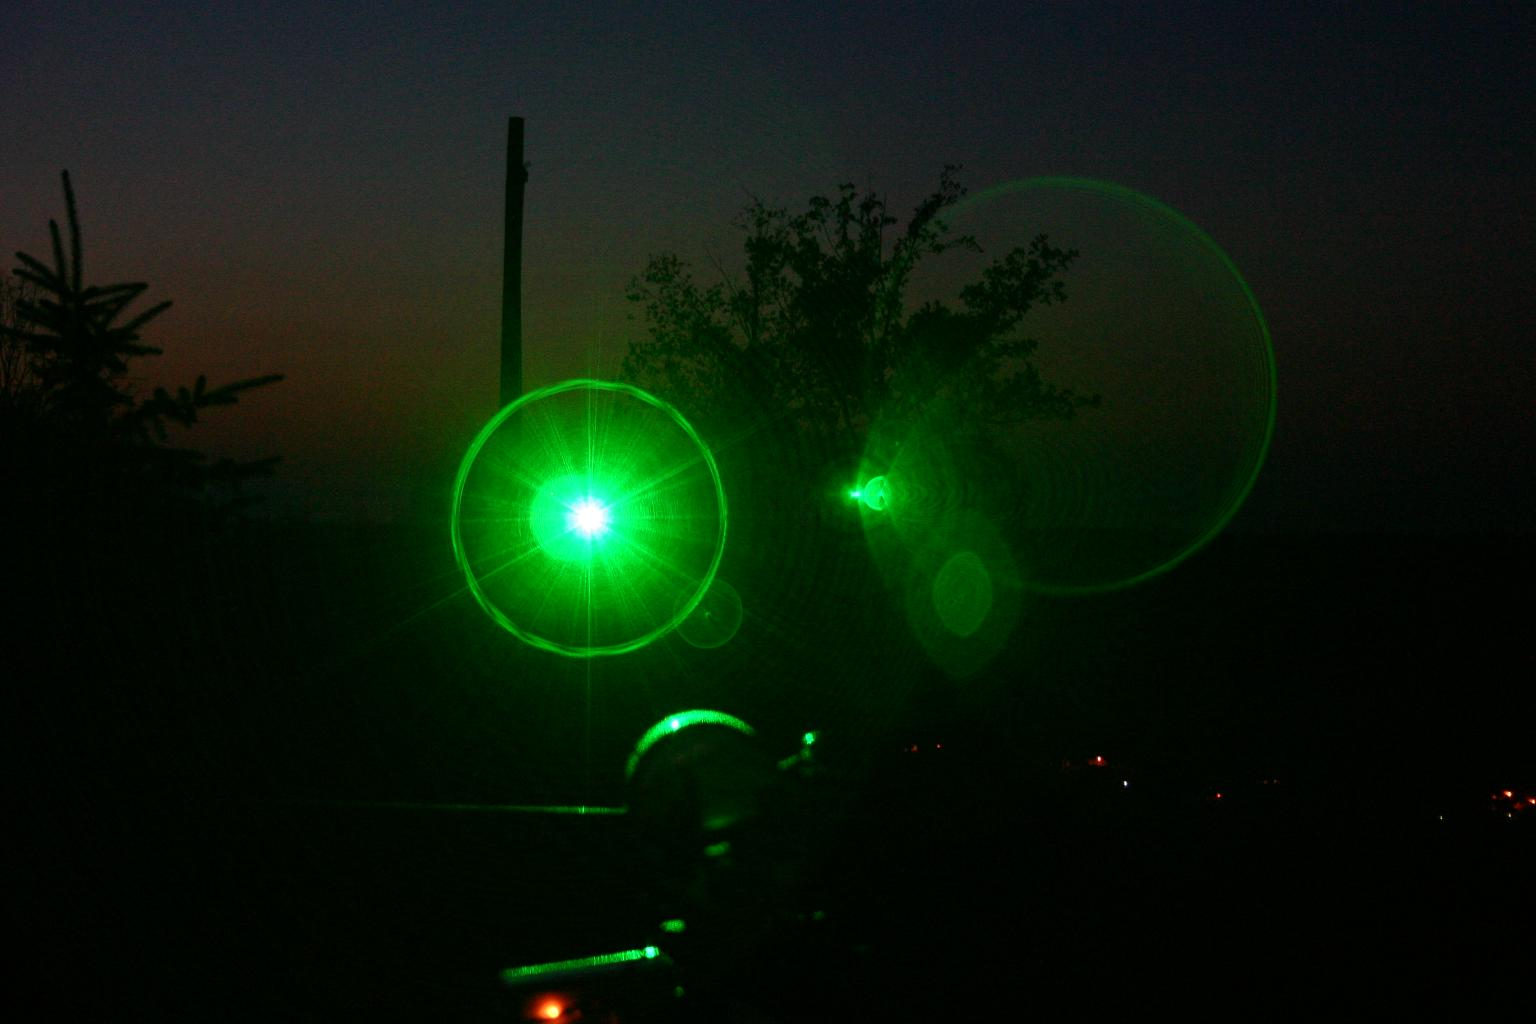 Laser communication in space